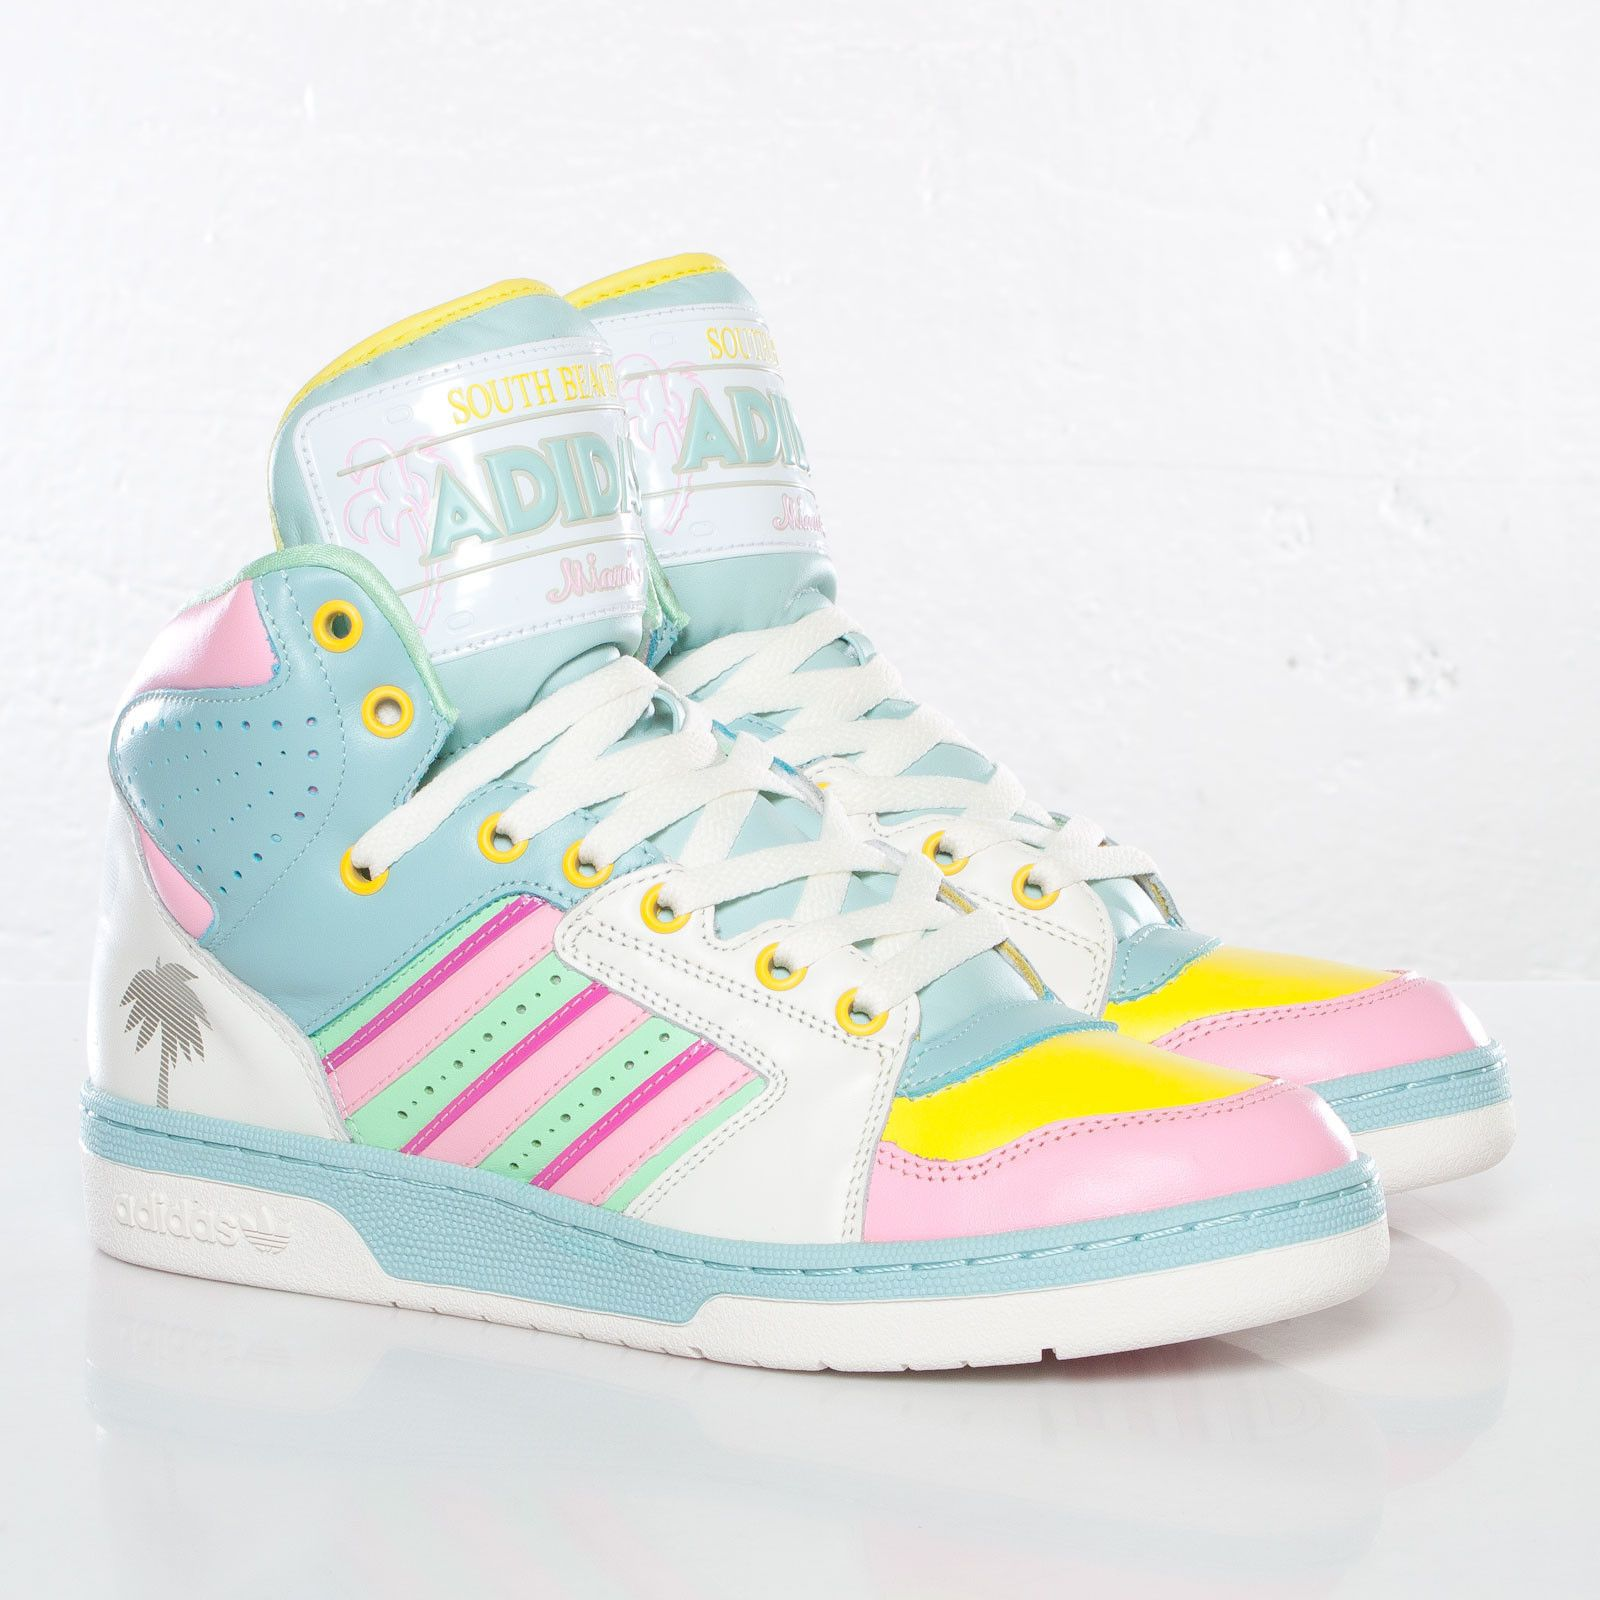 4e2a3c9916a8 ADIDAS OBYO JEREMY SCOTT LICENSE PLATE SOUTH BEACH MIAMI G95772  135 ...